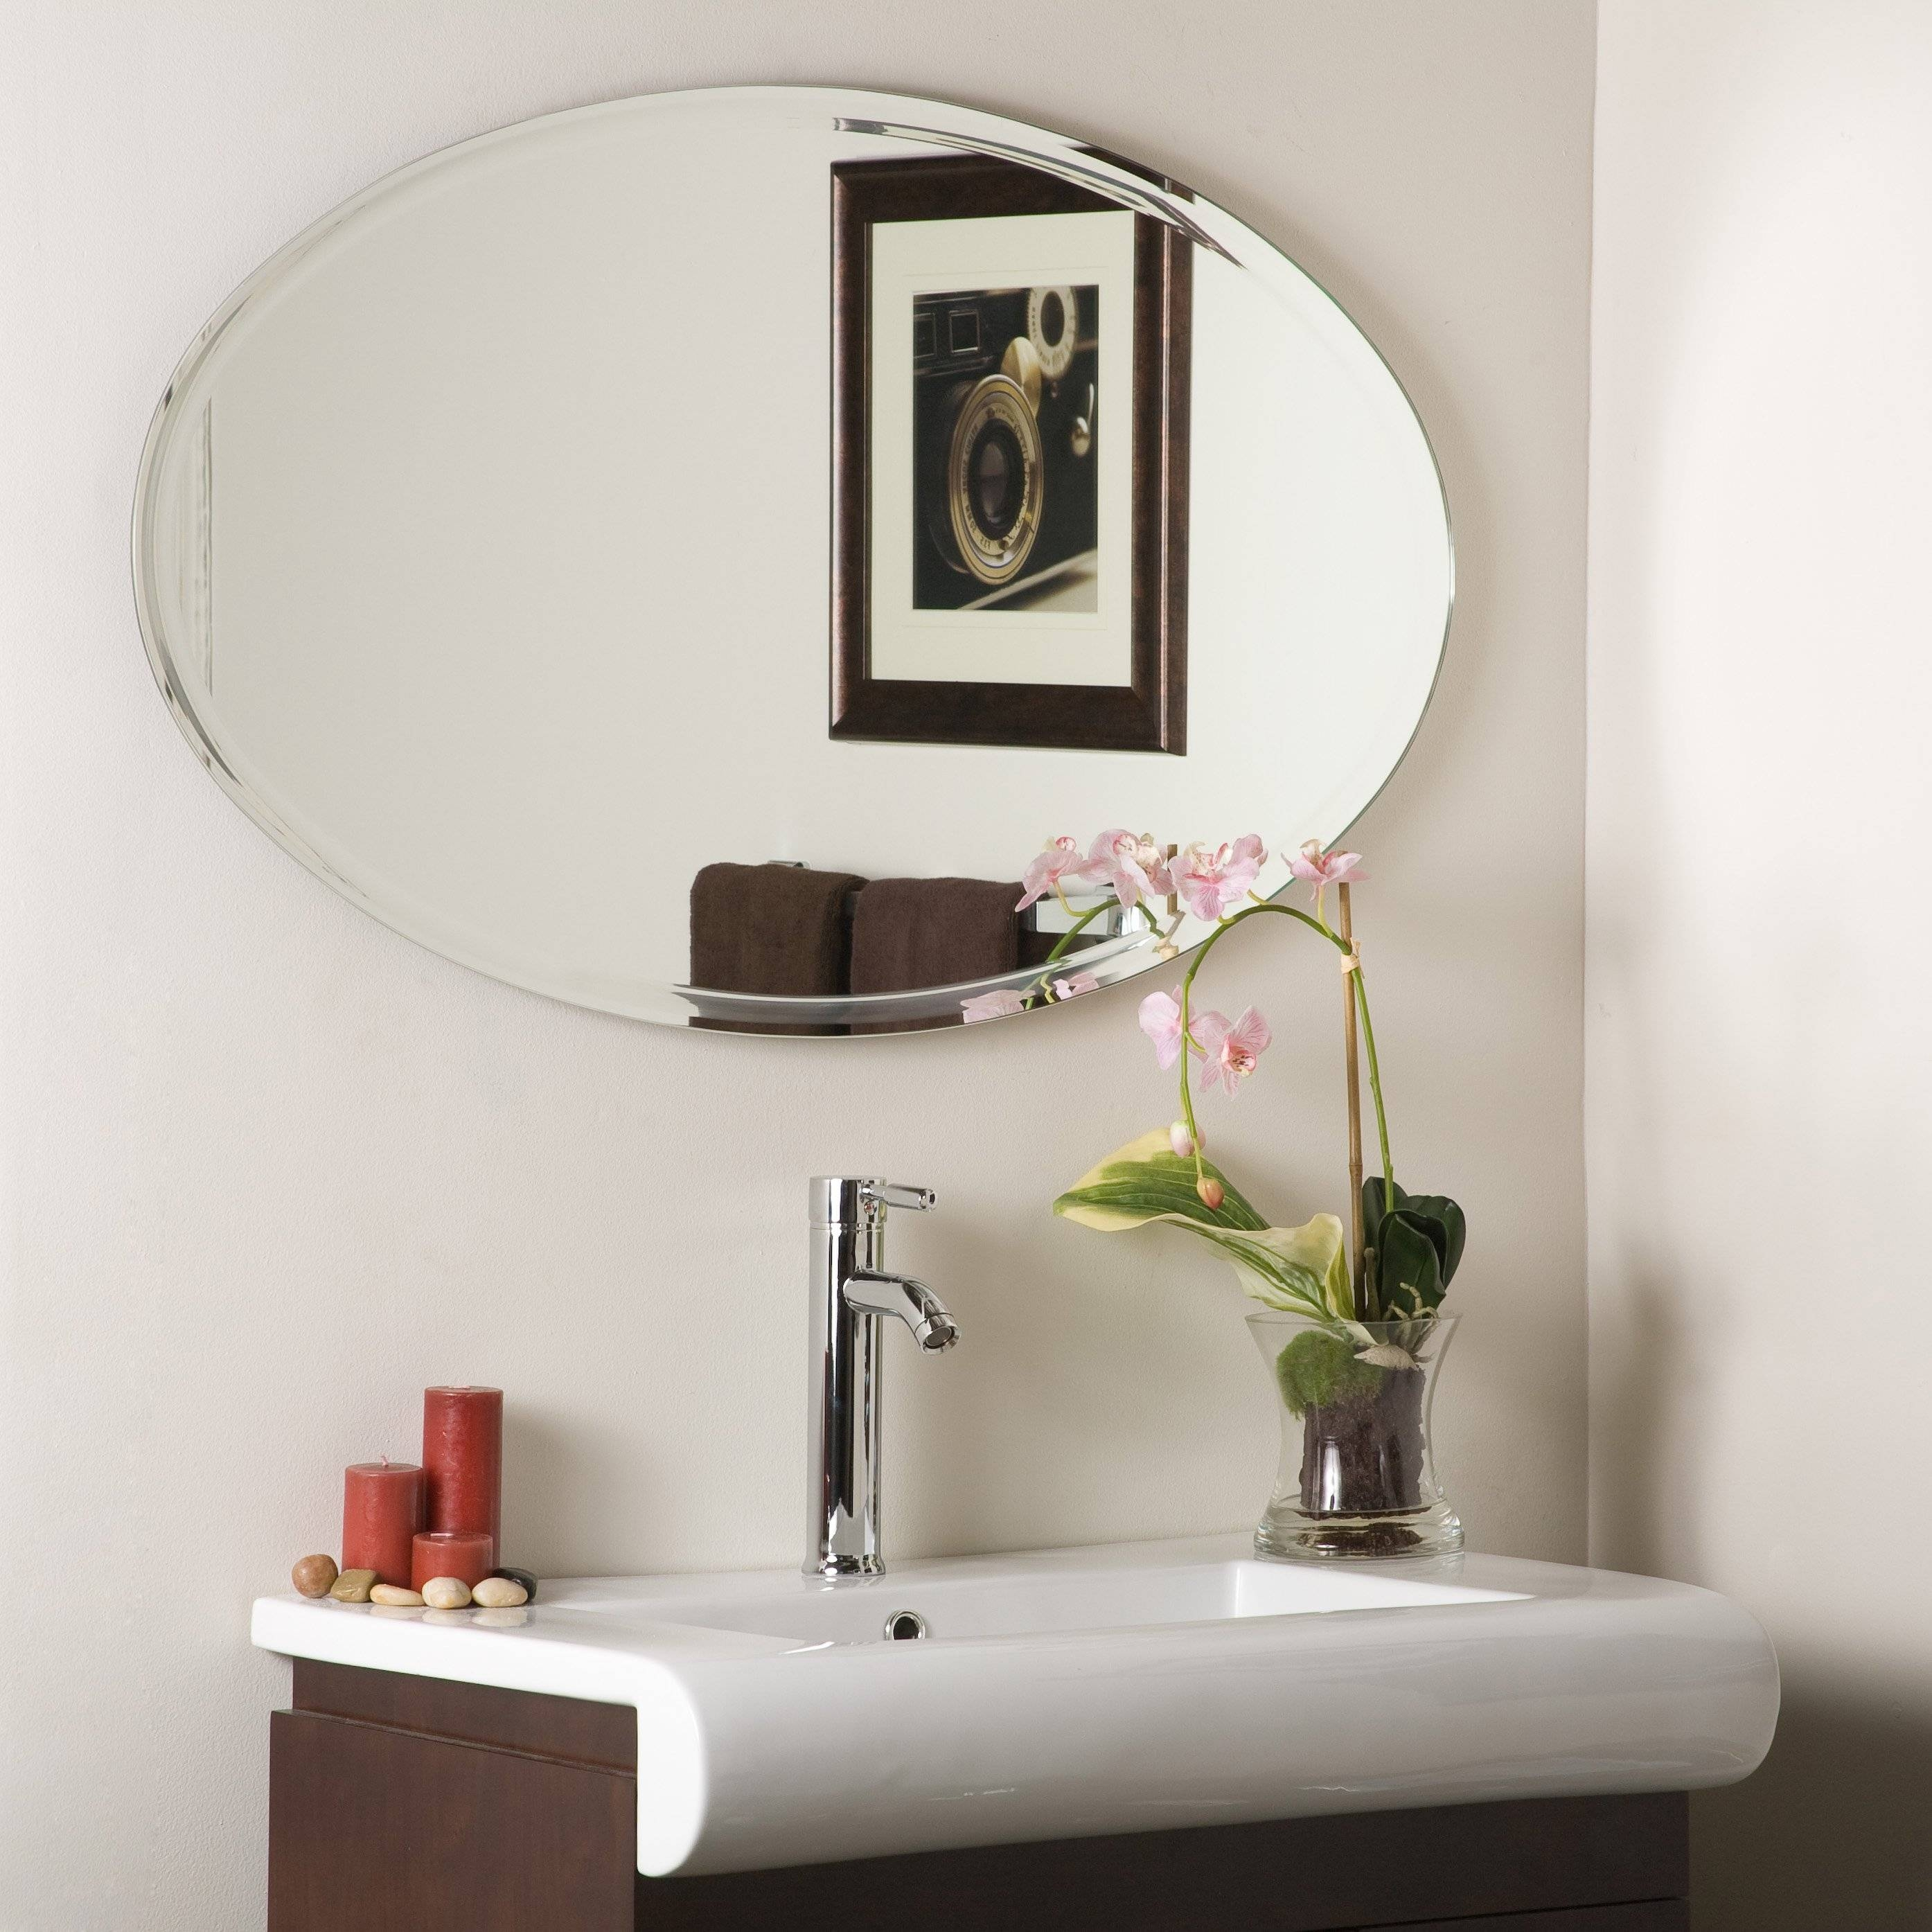 Bathroom: Large Vanity Mirror | Oval Mirrors For Bathroom | Lowes pertaining to Large Oval Wall Mirrors (Image 5 of 15)